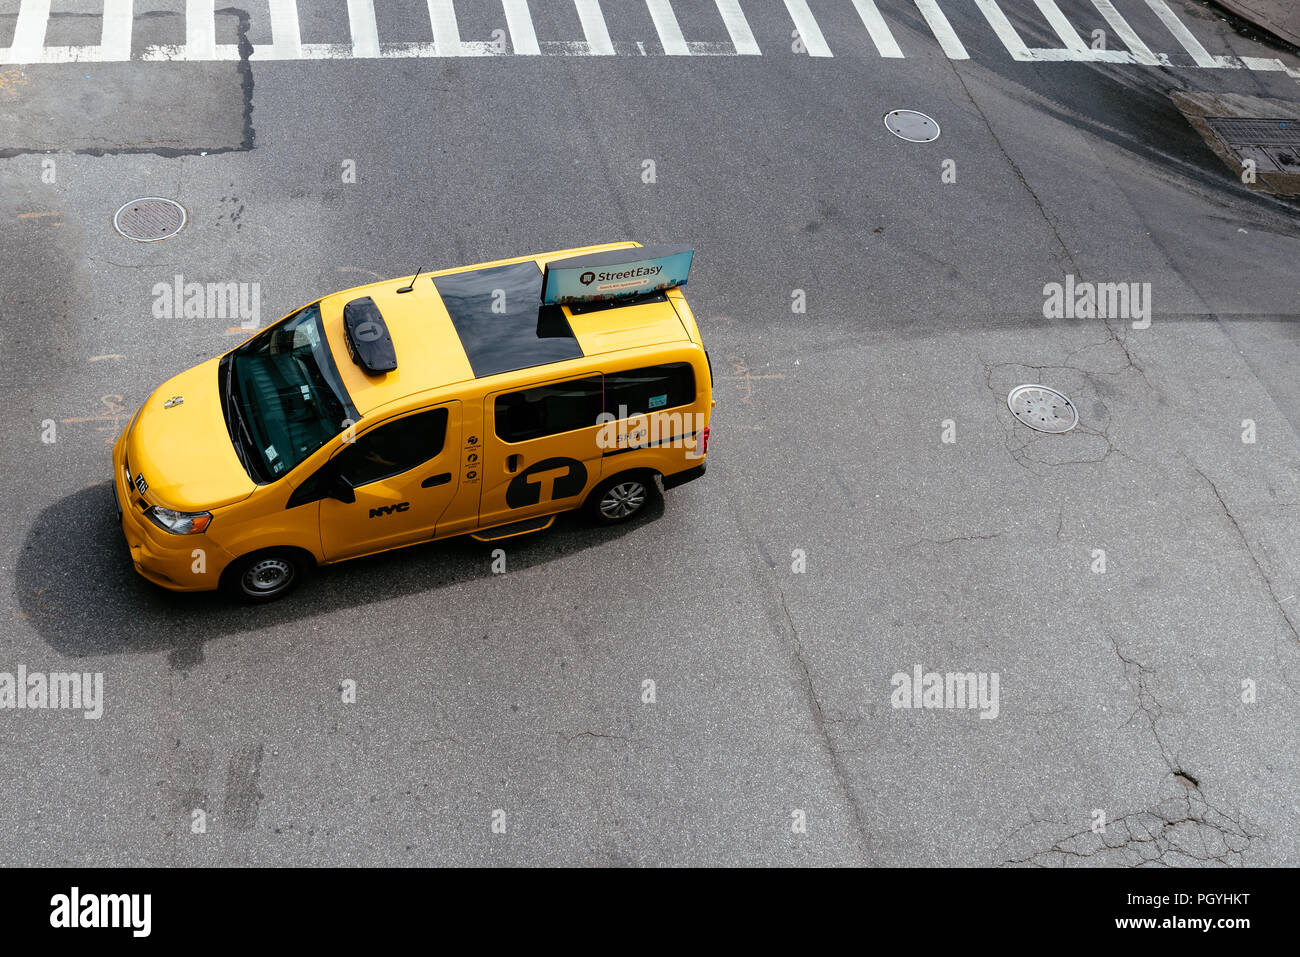 New York City, USA - June 22, 2018: Yellow taxi cab in Manhattan. High angle view. Nissan NV200 is the model of the New York City taxi - Stock Image